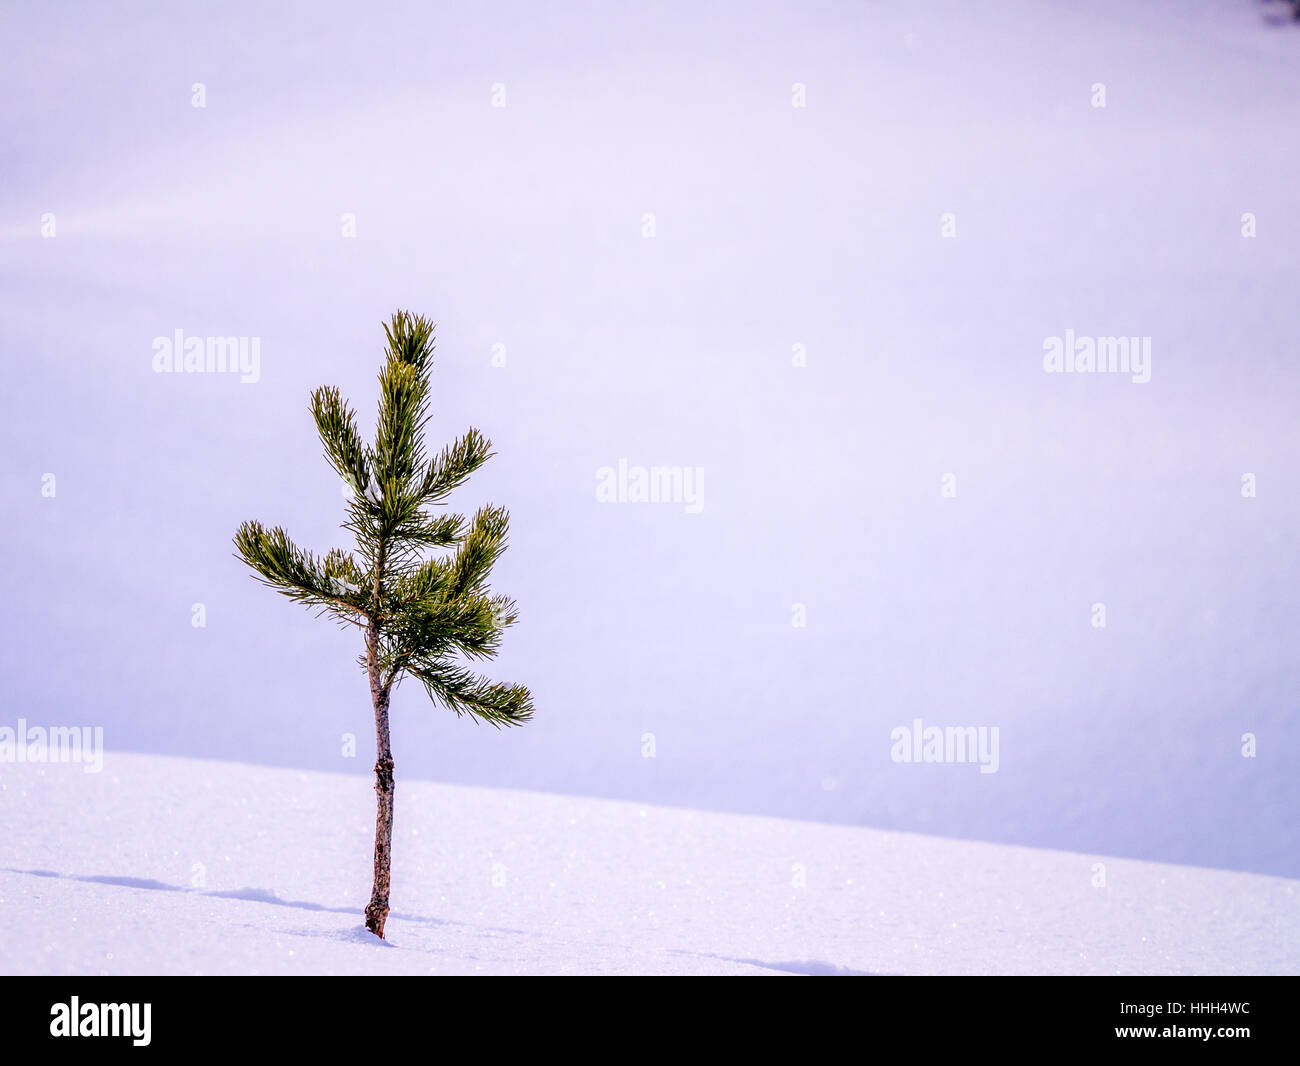 Small pine alone in snow with tracks - Stock Image